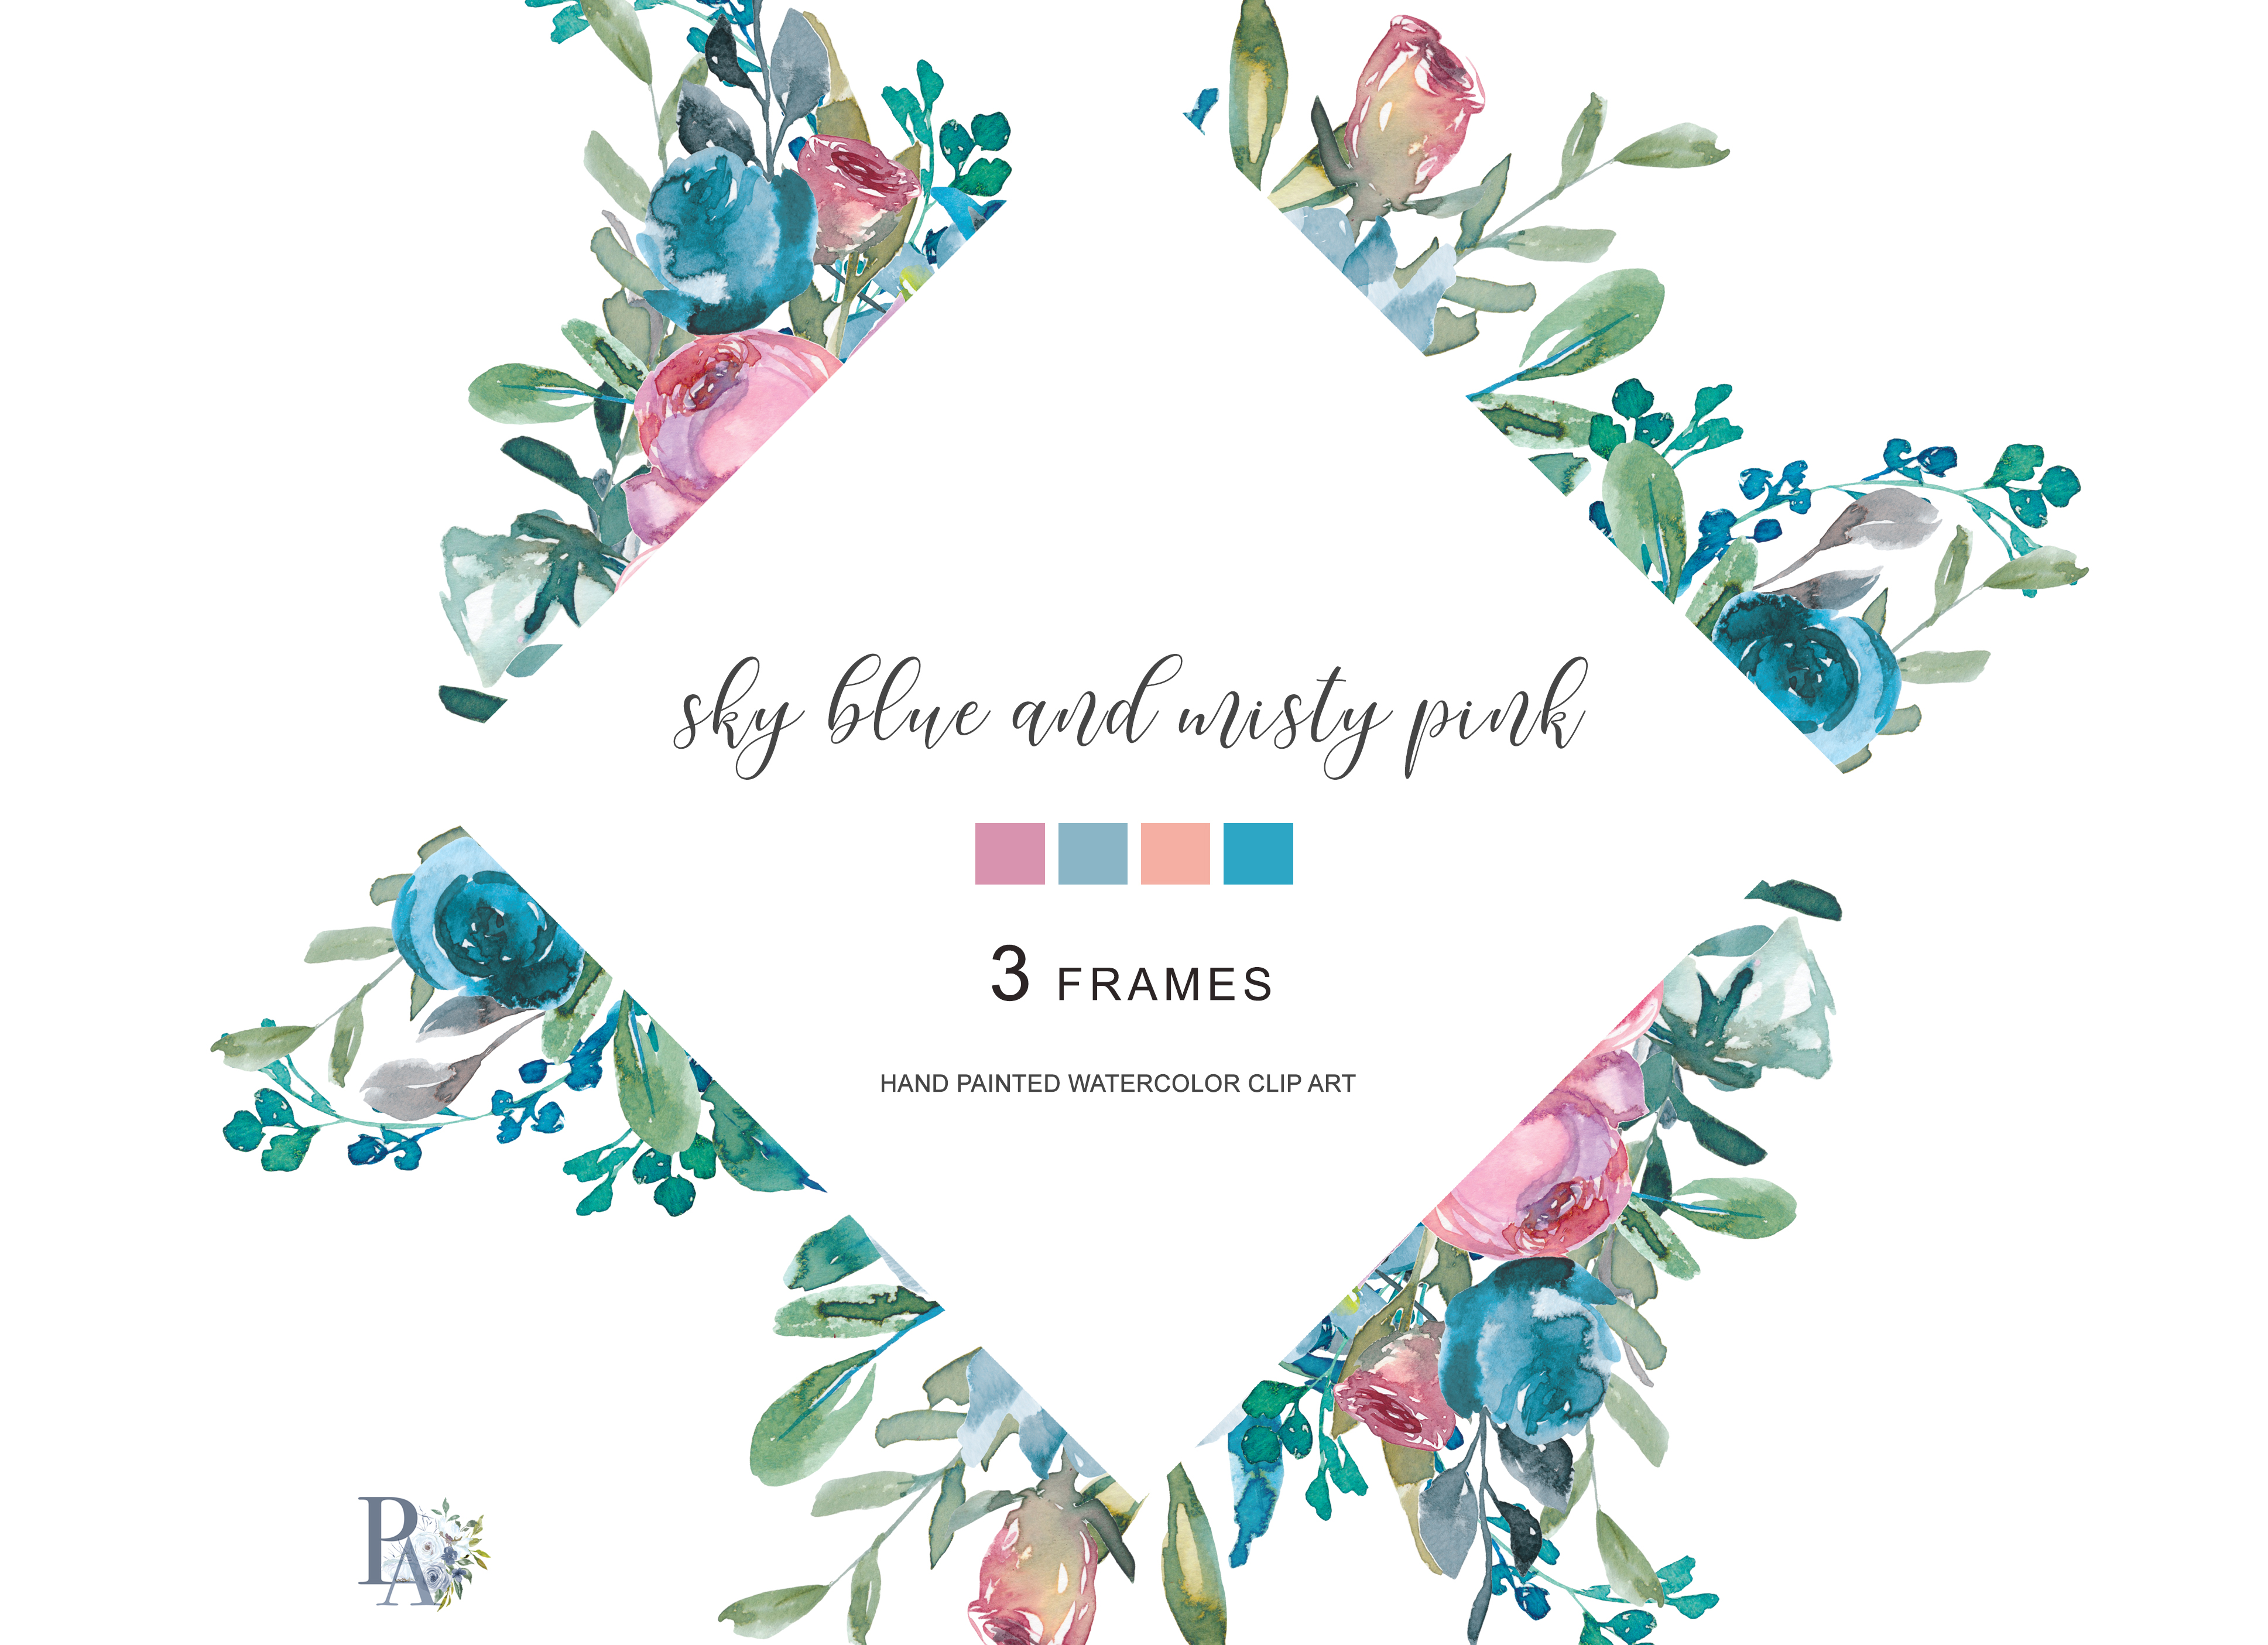 Watercolor Floral Frames Hand Painted Watercolor